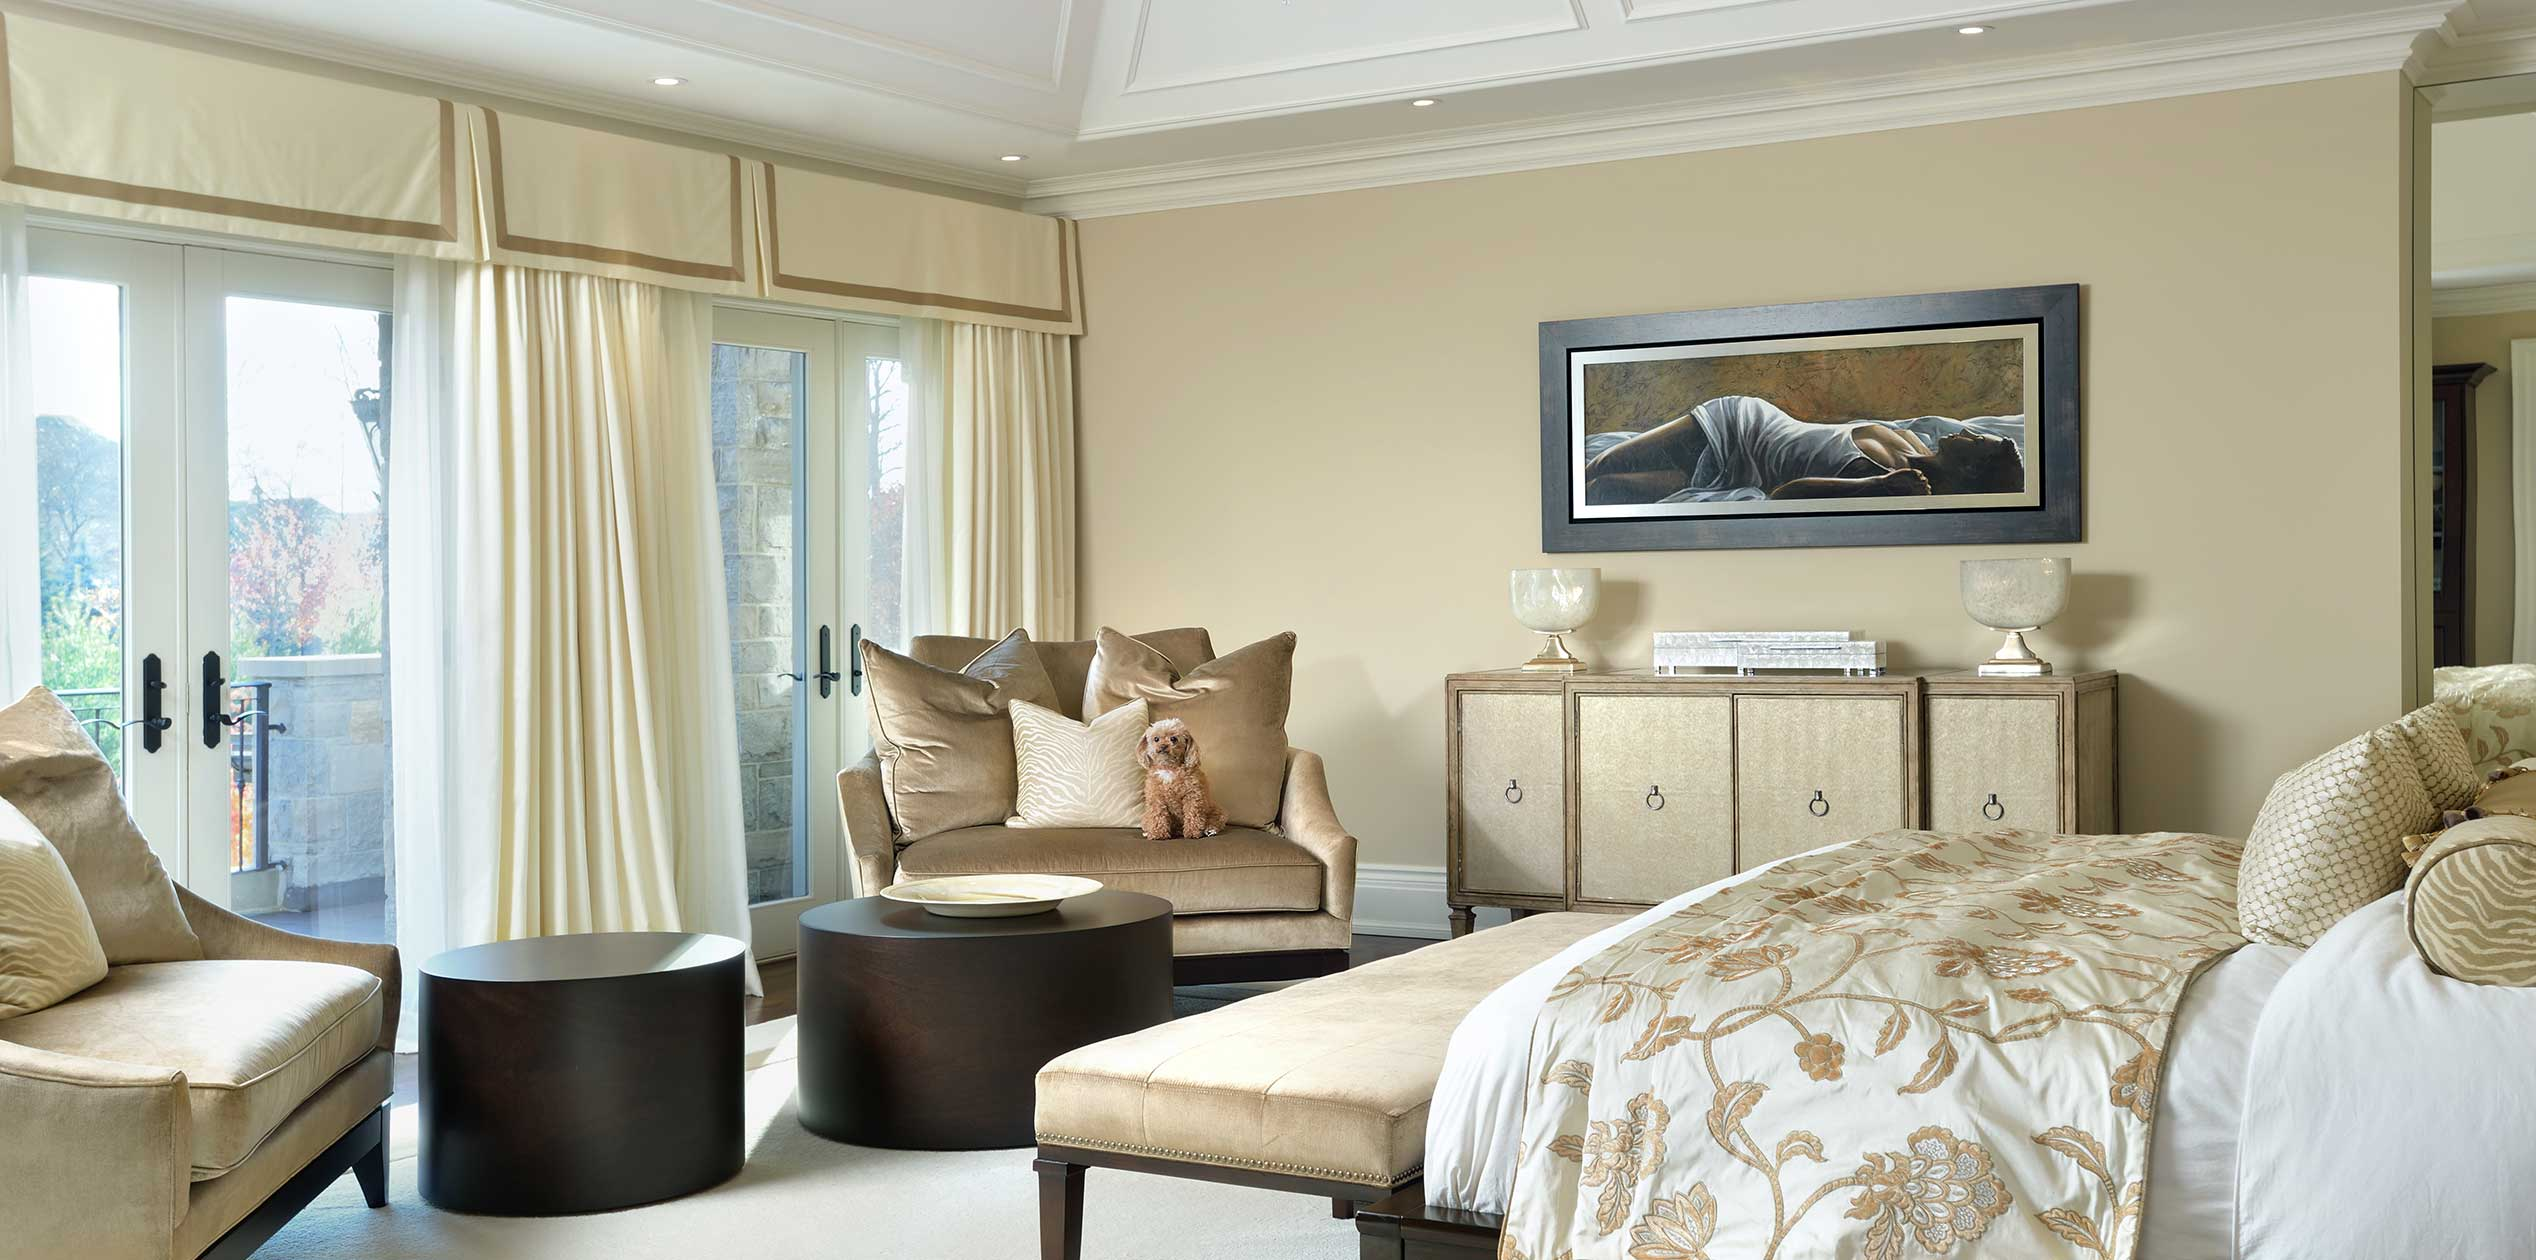 c Traditional Master Bedroom Suite